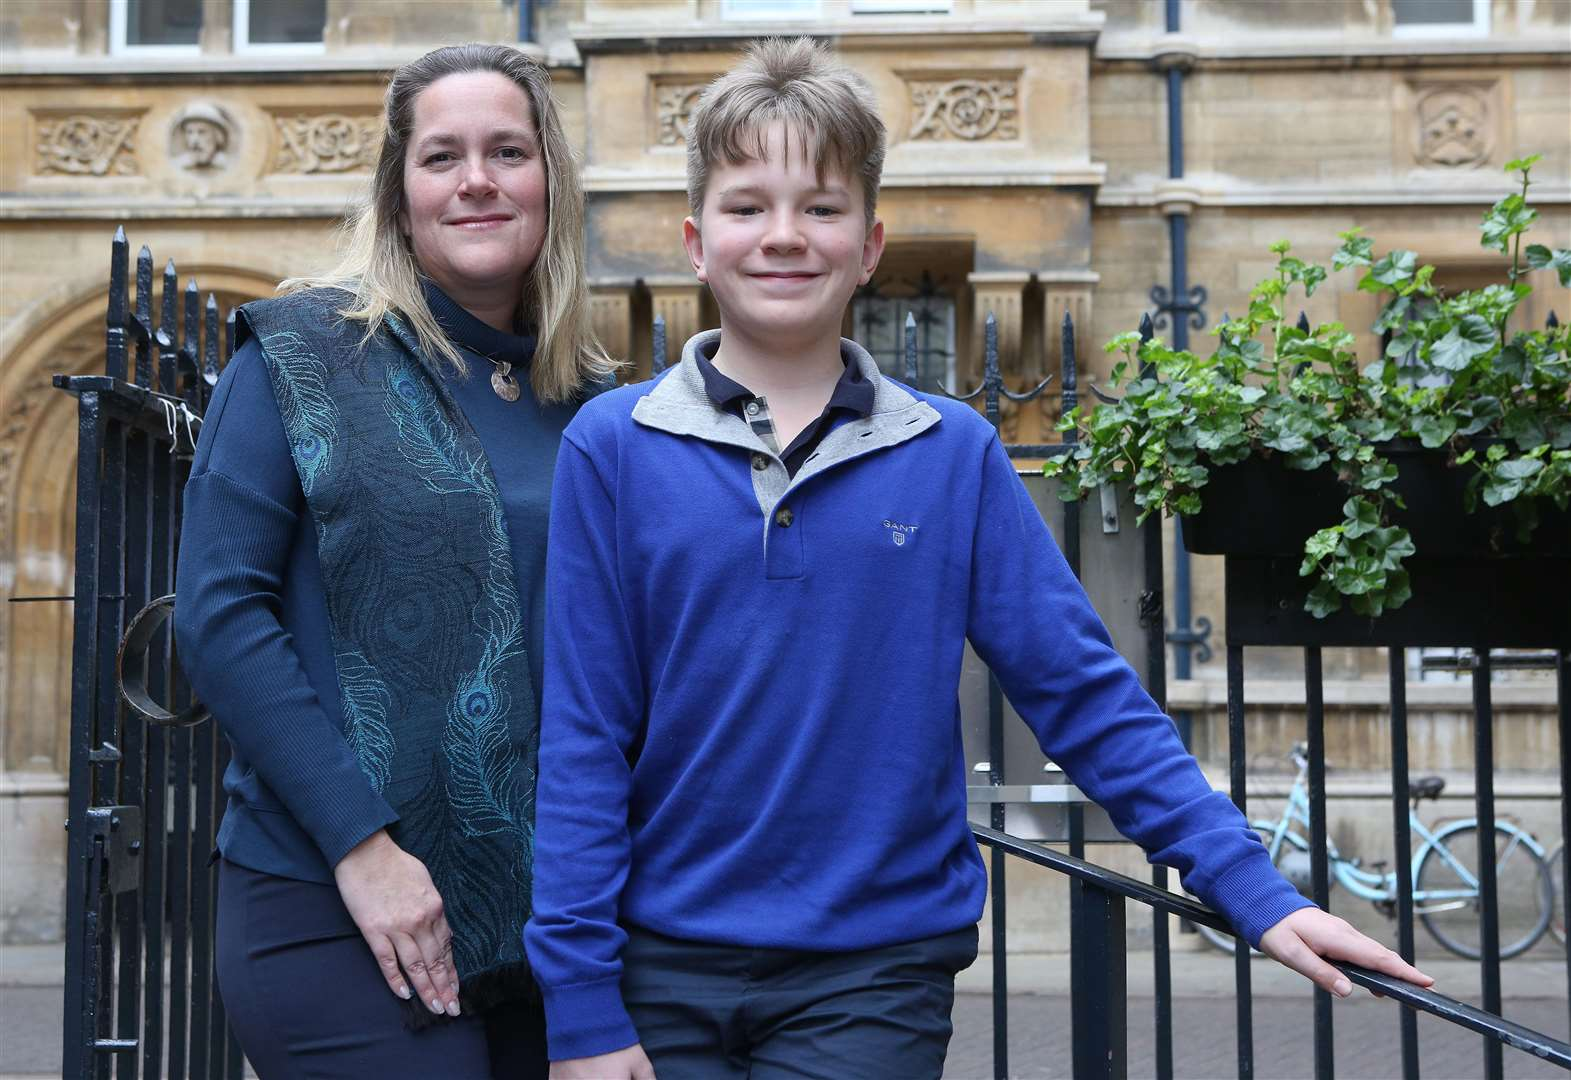 Award winning child author, Jona David, 13, picture with his mum, Prof. Marie-Claire Cordonier Segger..Pic - Richard Marsham. (7483511)